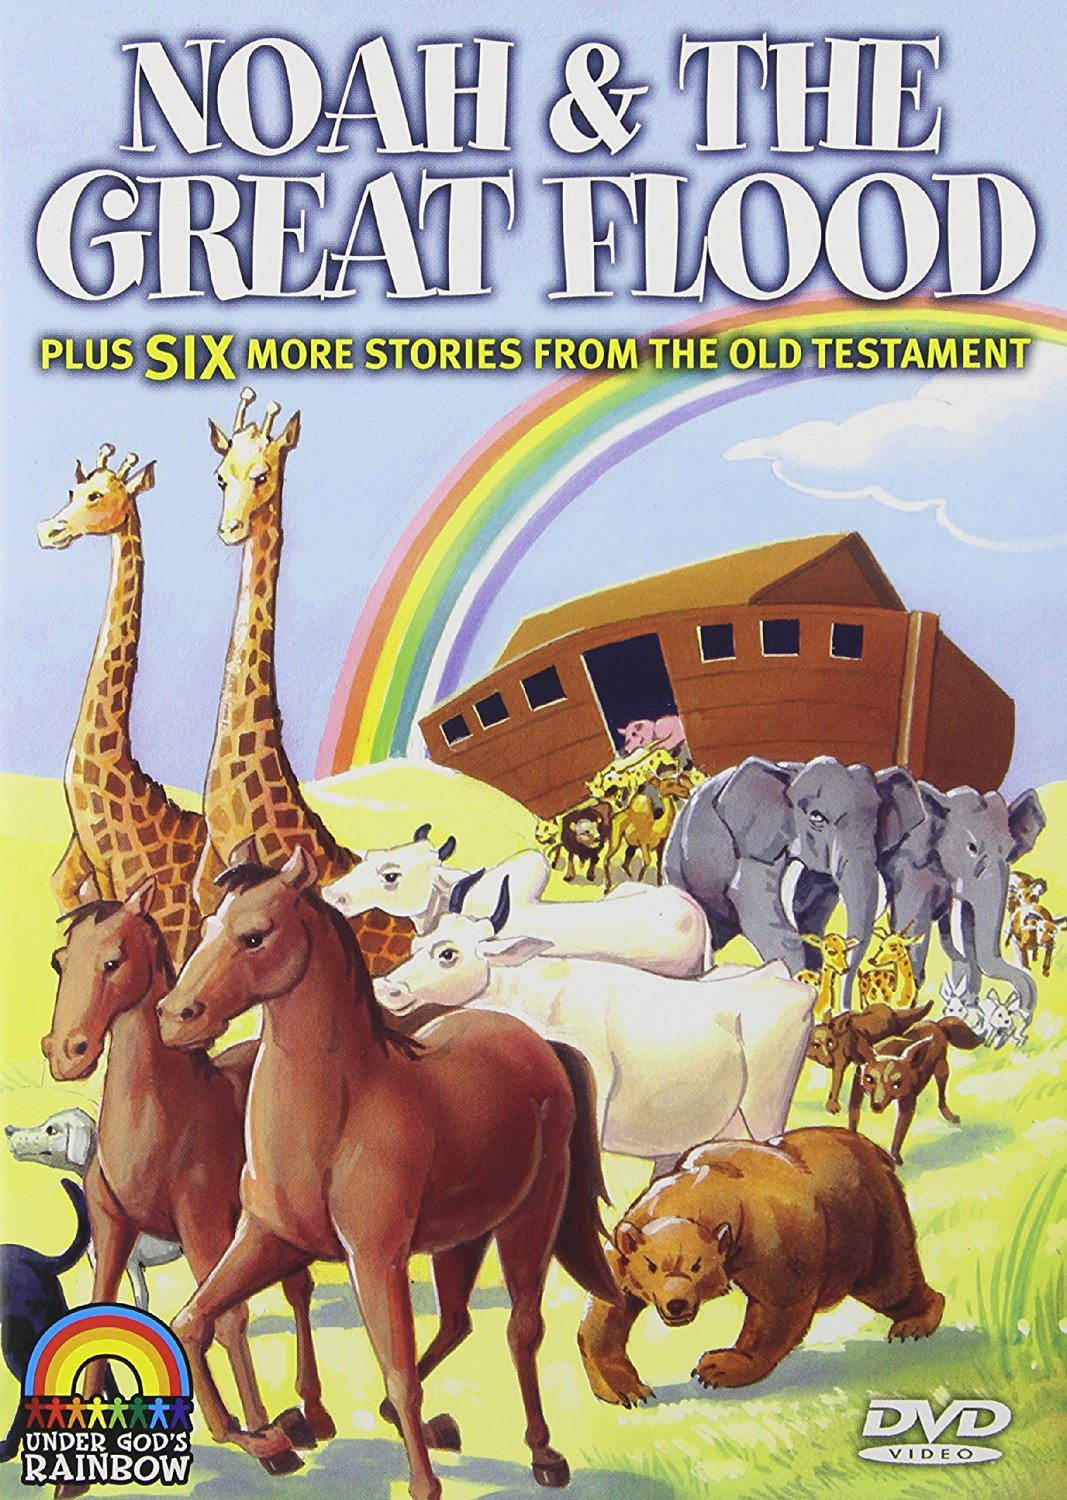 Children's Bible Stories - Noah And The Great Flood Plus 6 More Stories From The Old Testament Under God's Rainbow